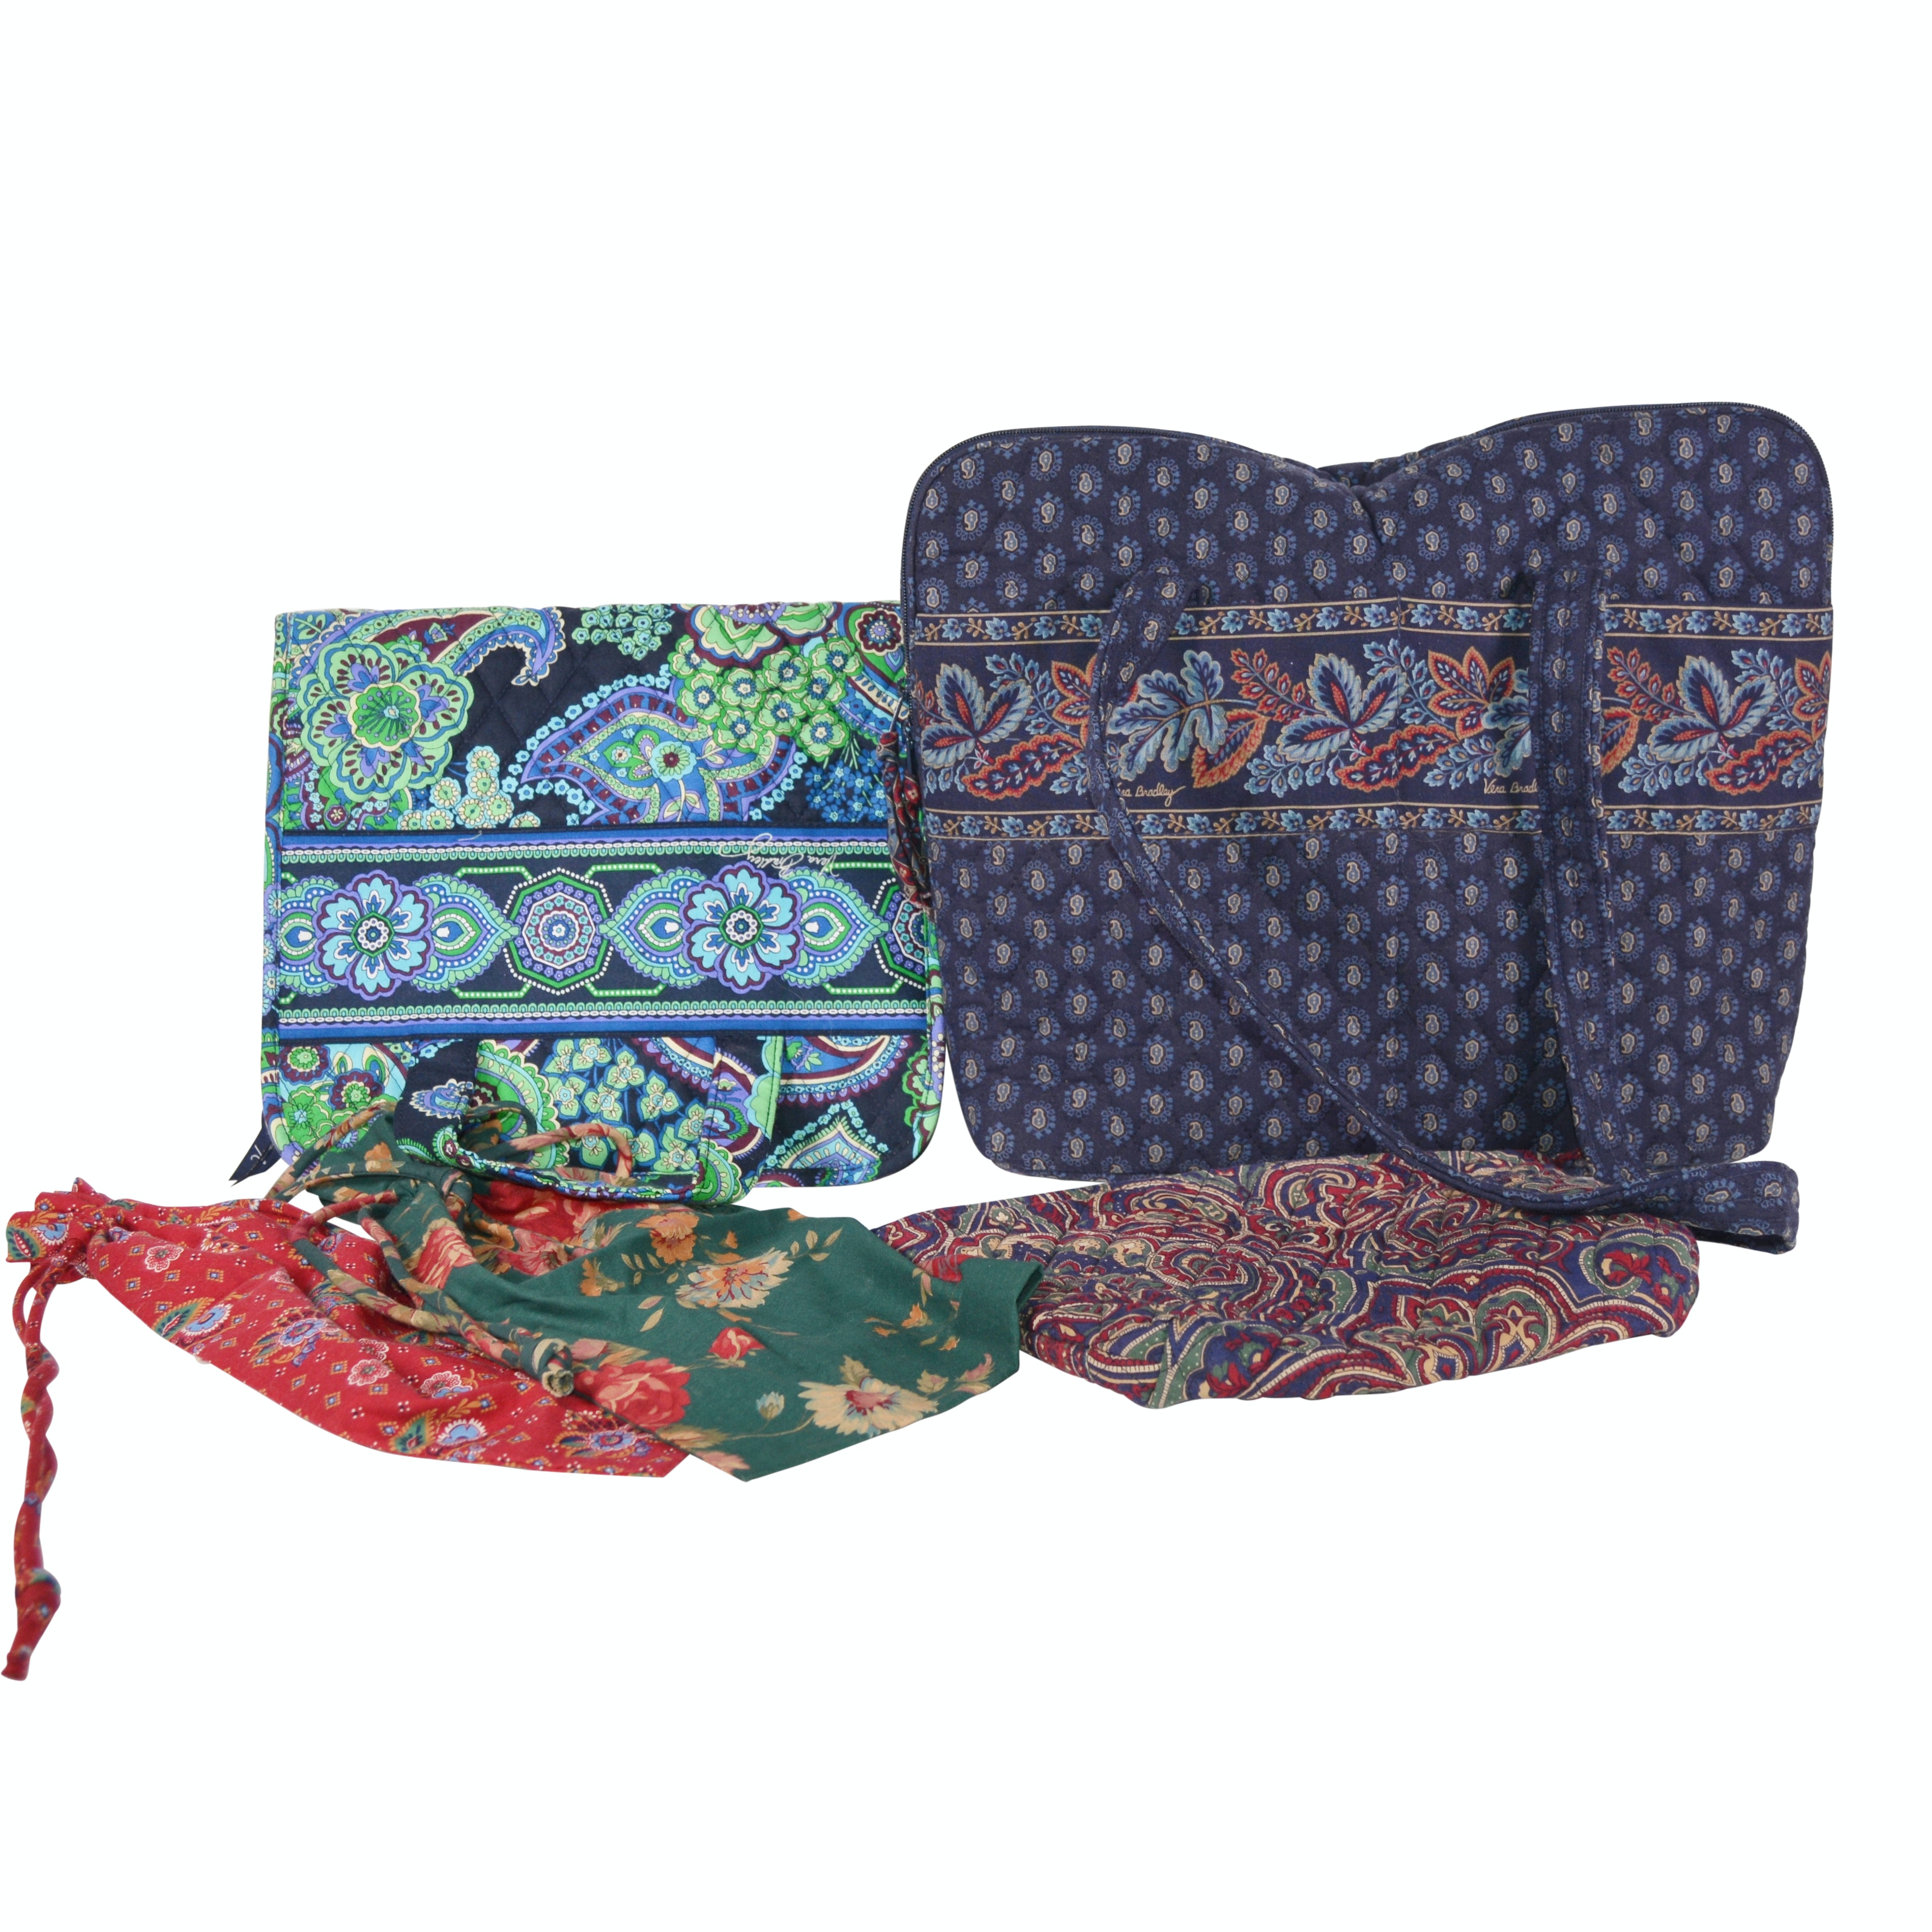 Collection of Vera Bradley Bags